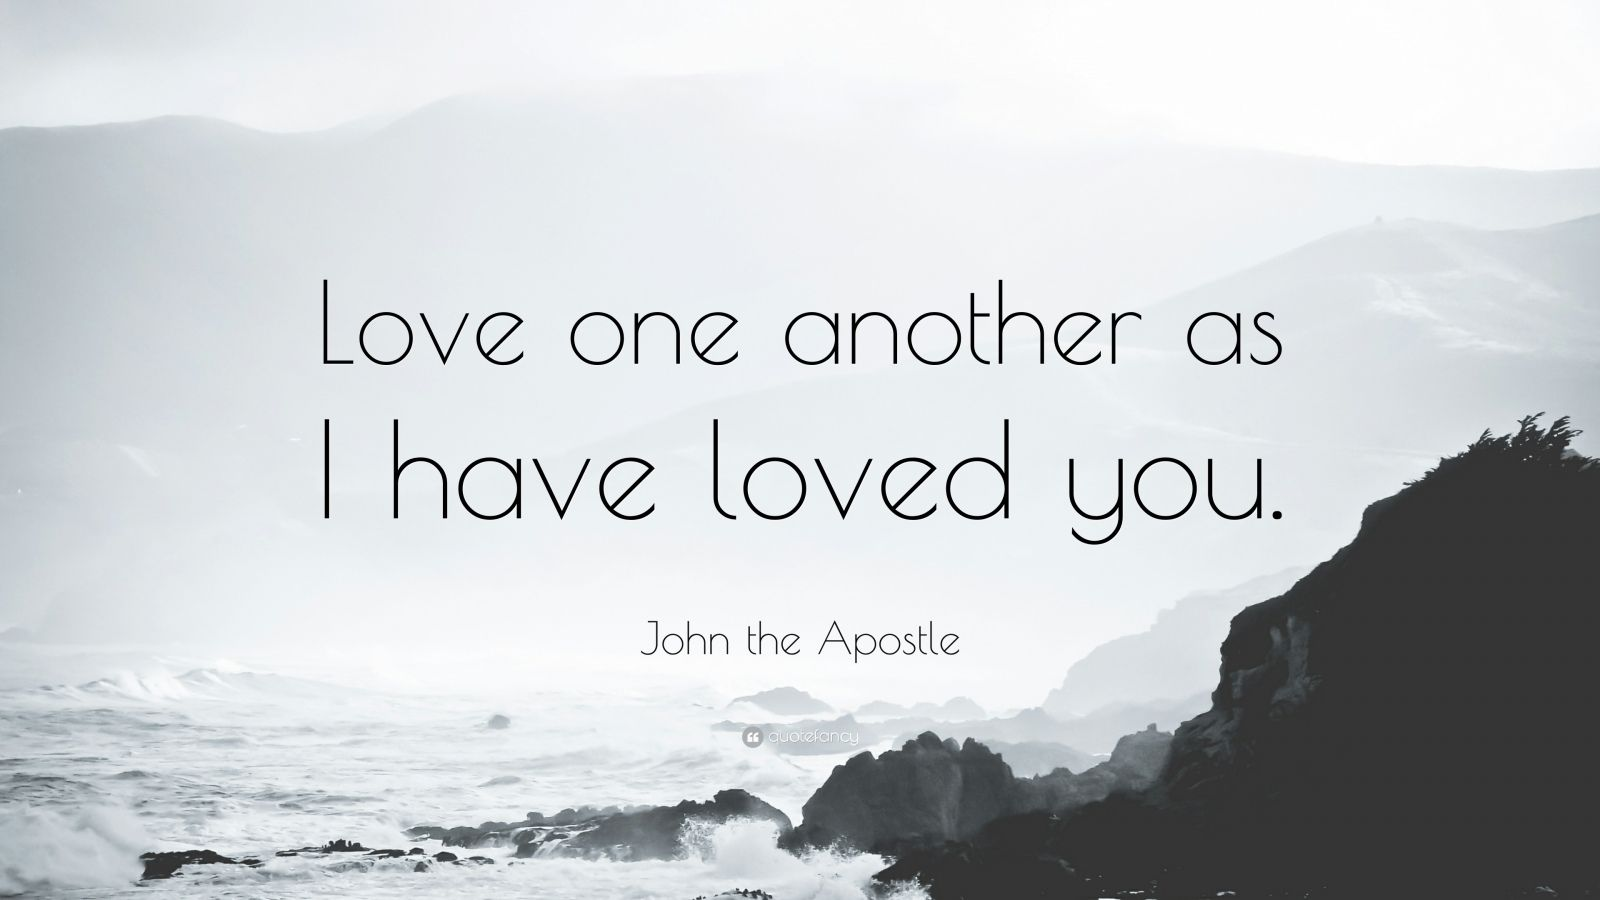 John the Apostle Quote: Love one another as I have loved